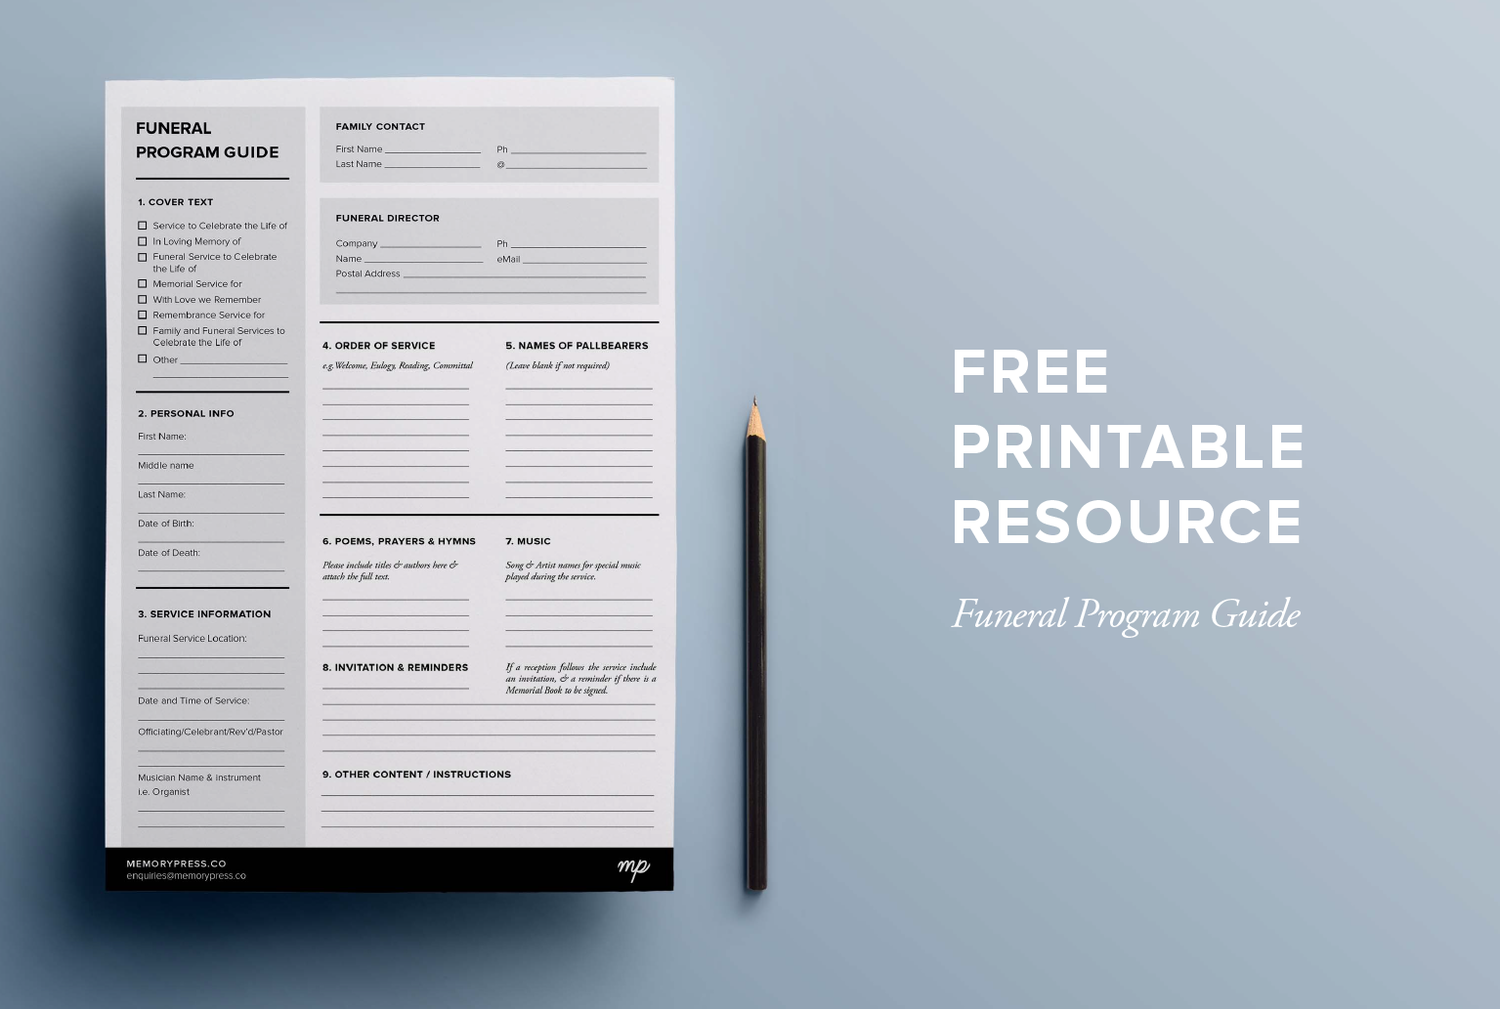 Free Printable Funeral Program Check Sheet To Help You With Planning Your  Service Booklet.  Free Printable Memorial Service Programs